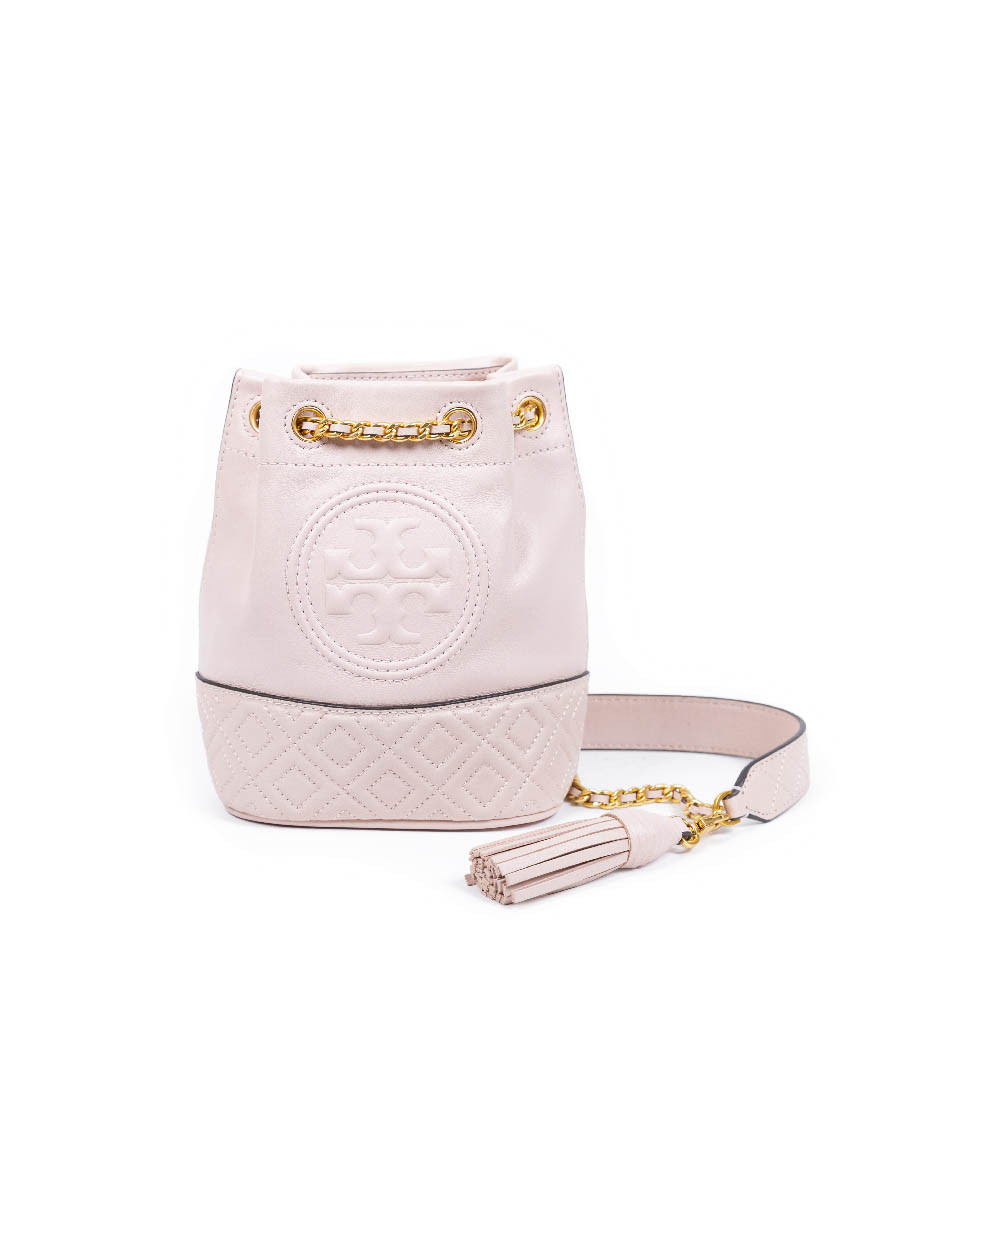 "Sac Tory Burch ""Fleming"" rose poudre"